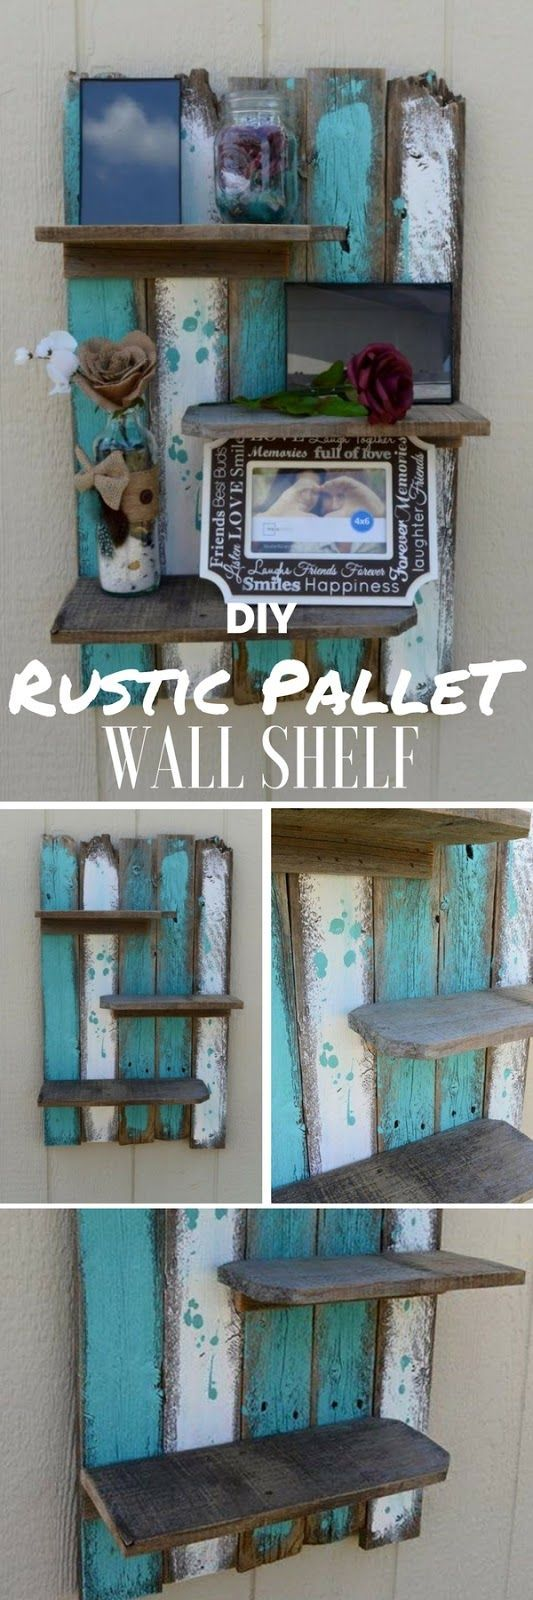 10 Insanely Genius DIY Home Decor Hacks You Have To Try